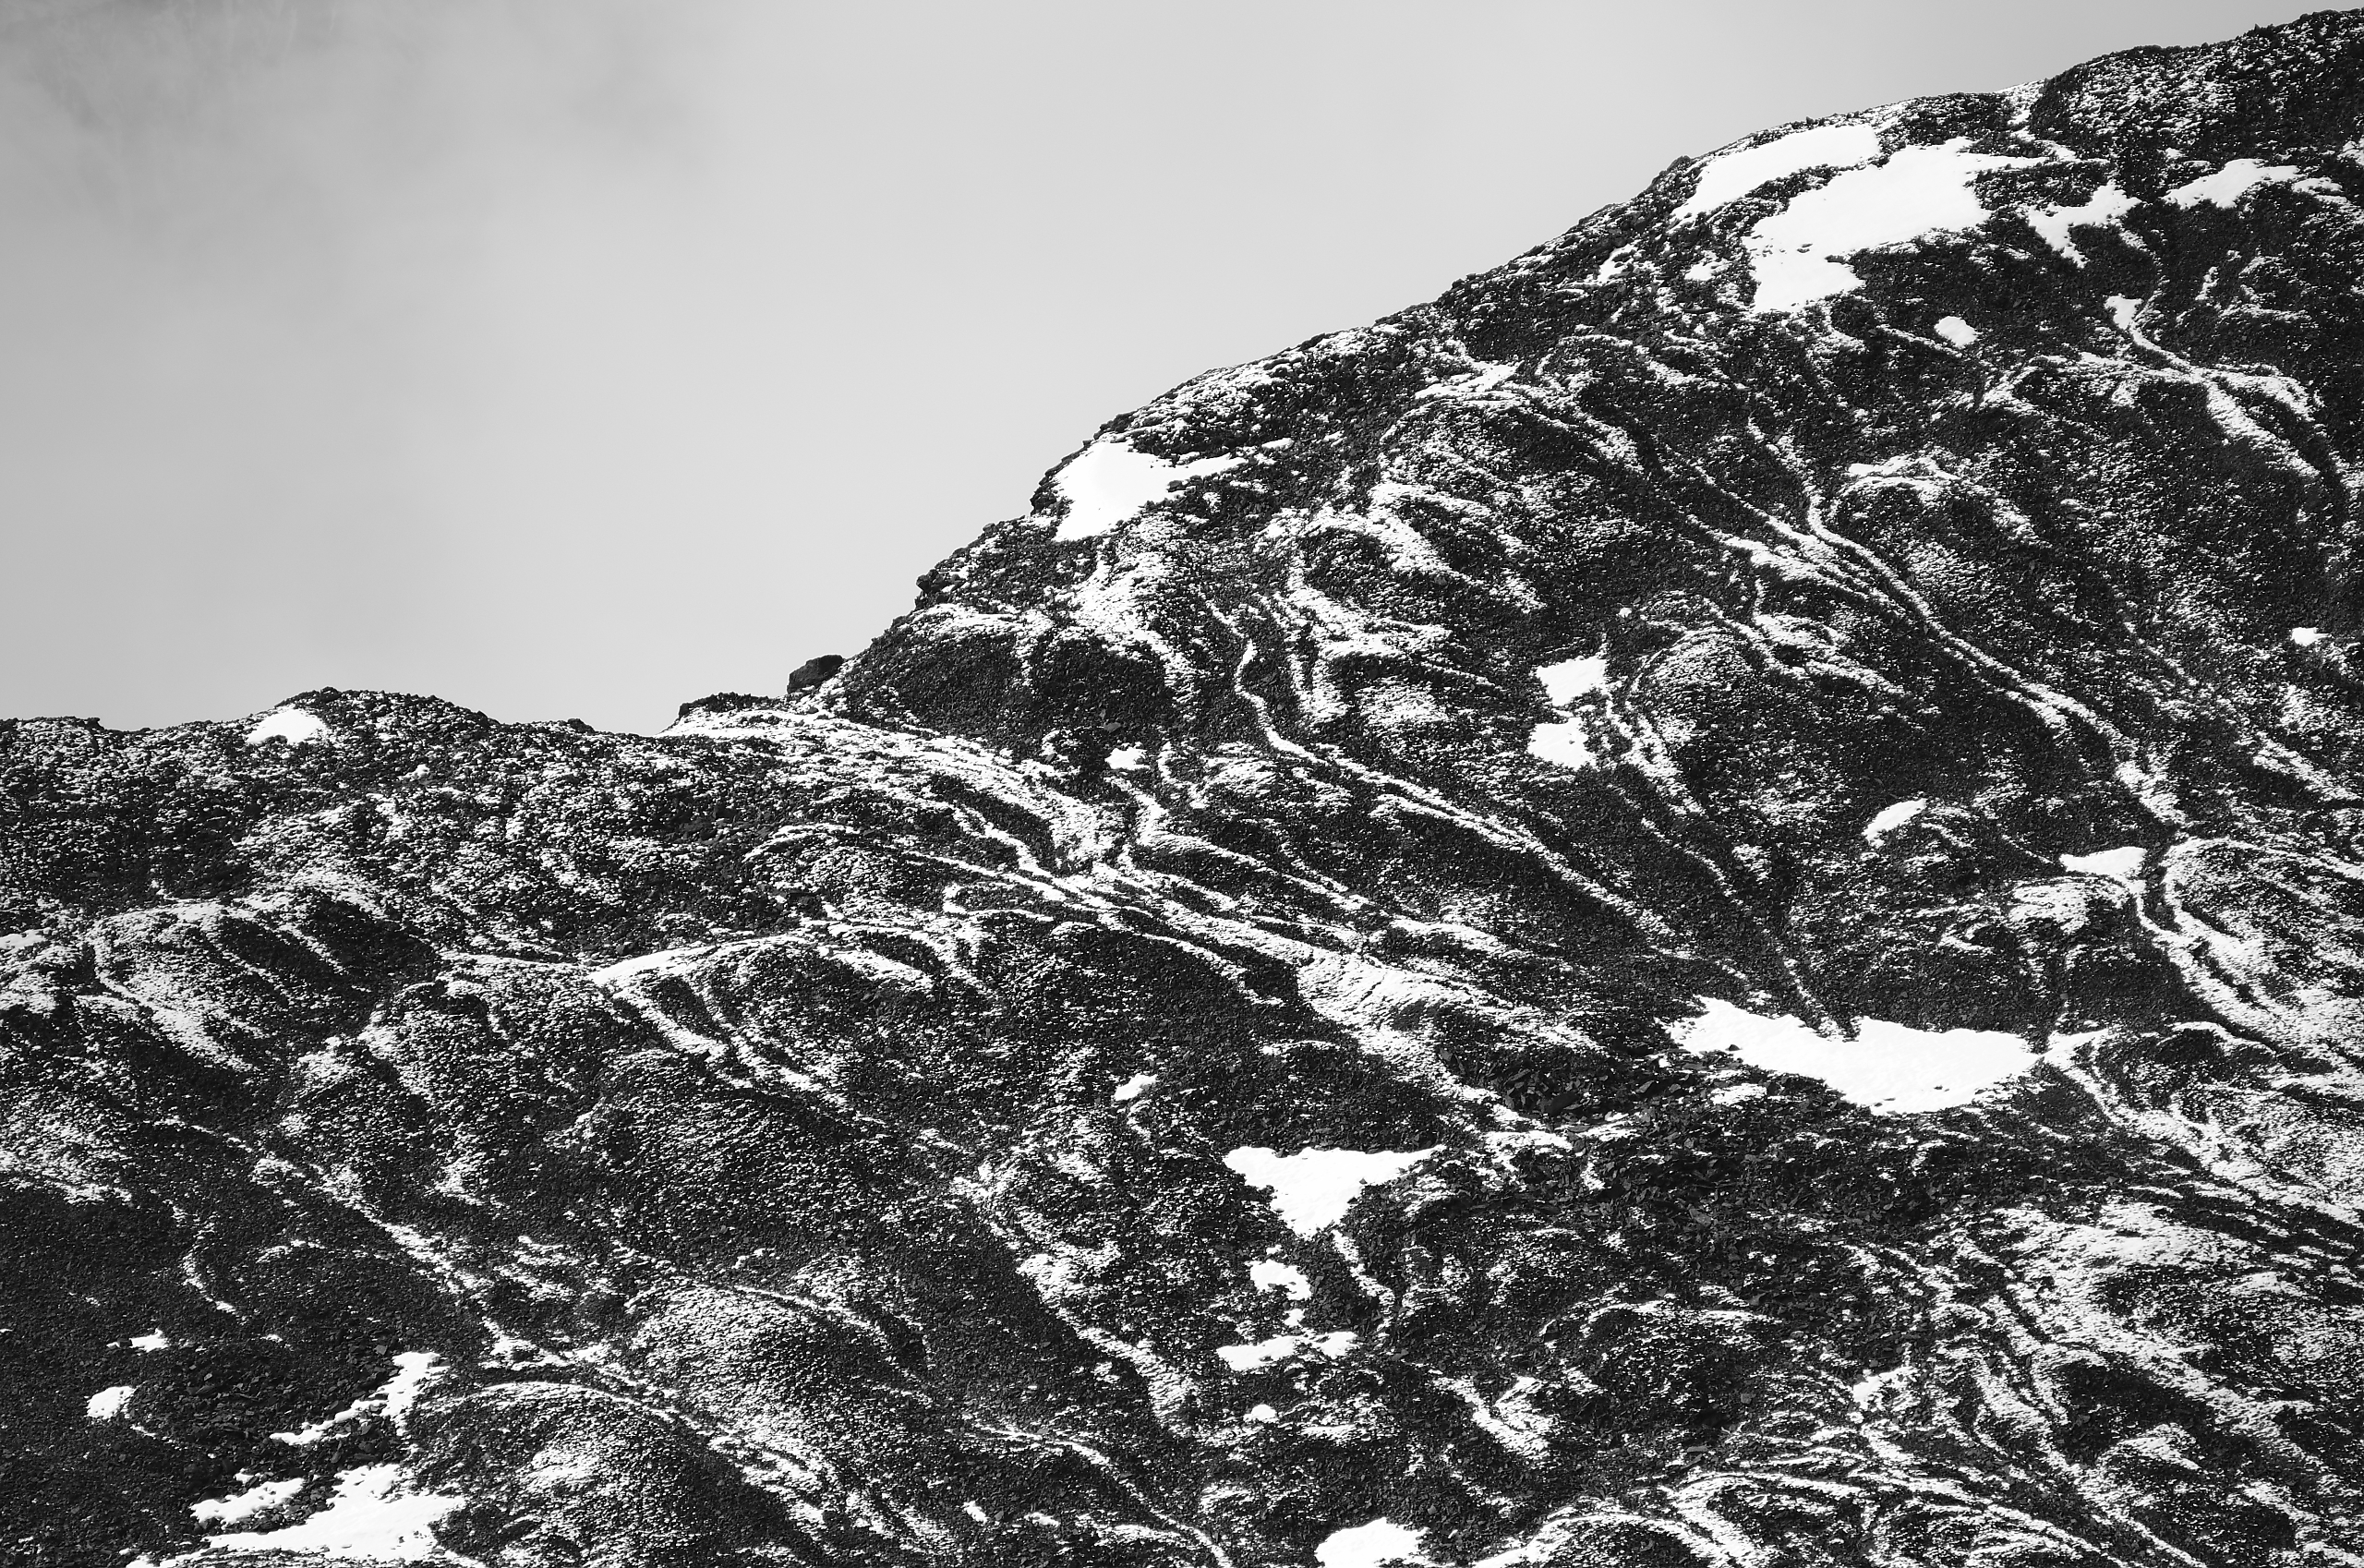 An abstract photograph, lacking any scale reference, of mountain snow.